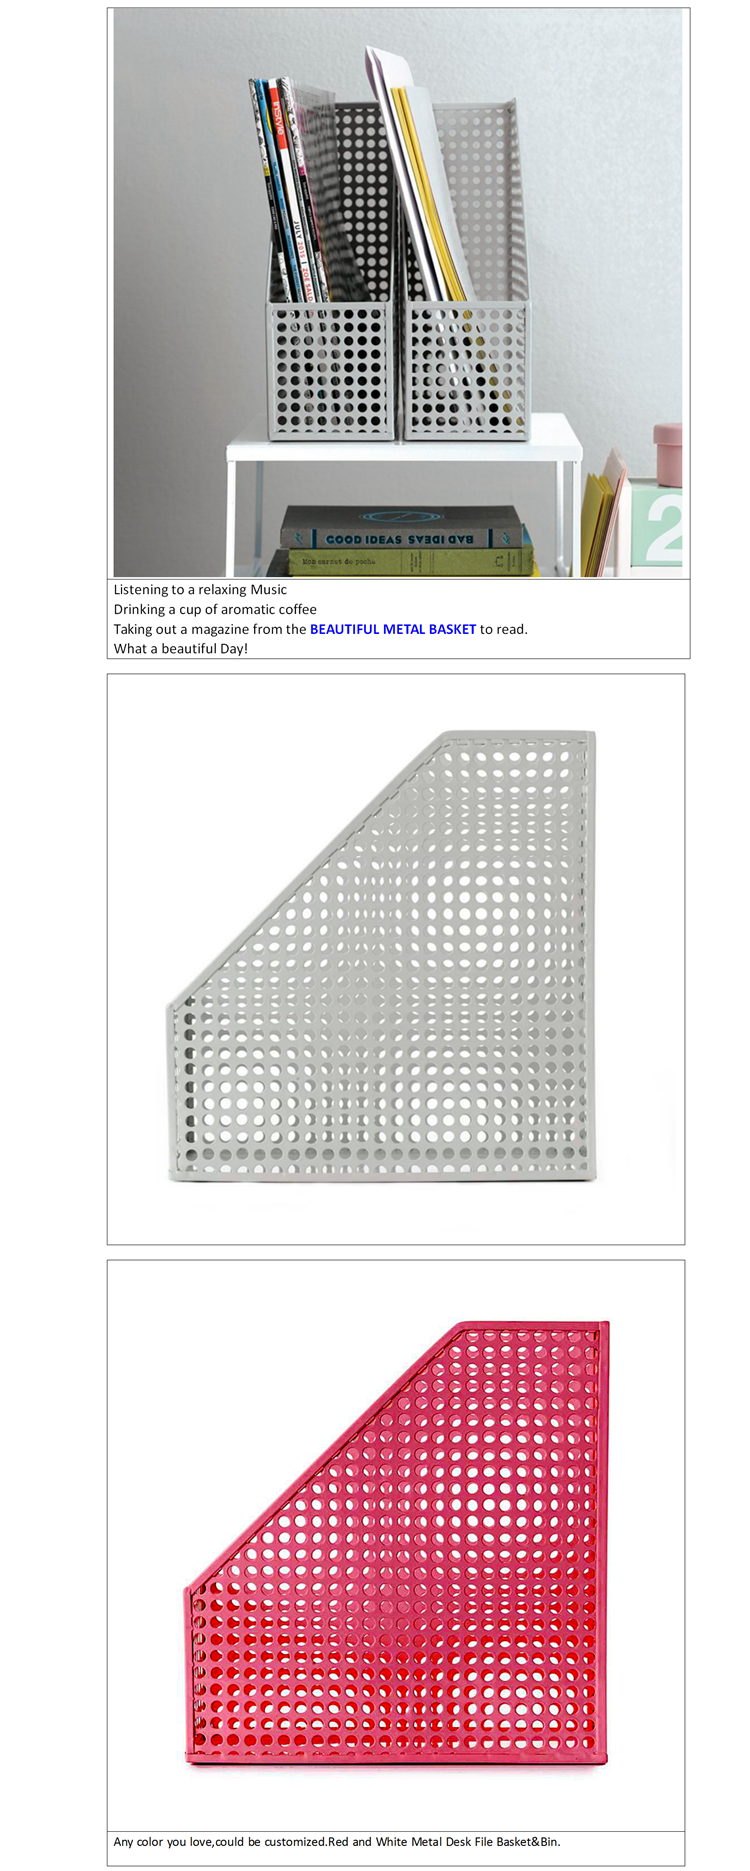 Perforated metal wire mesh container manufacturers in india Factory Direct Price